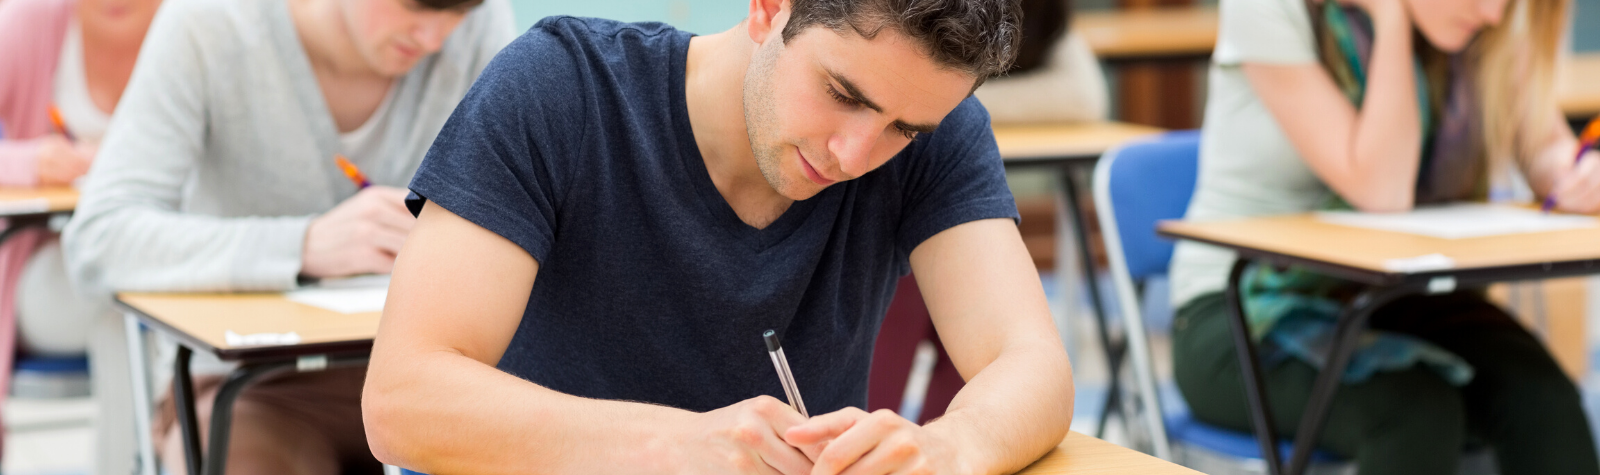 Taking an HSK Exam: What You Need to Know